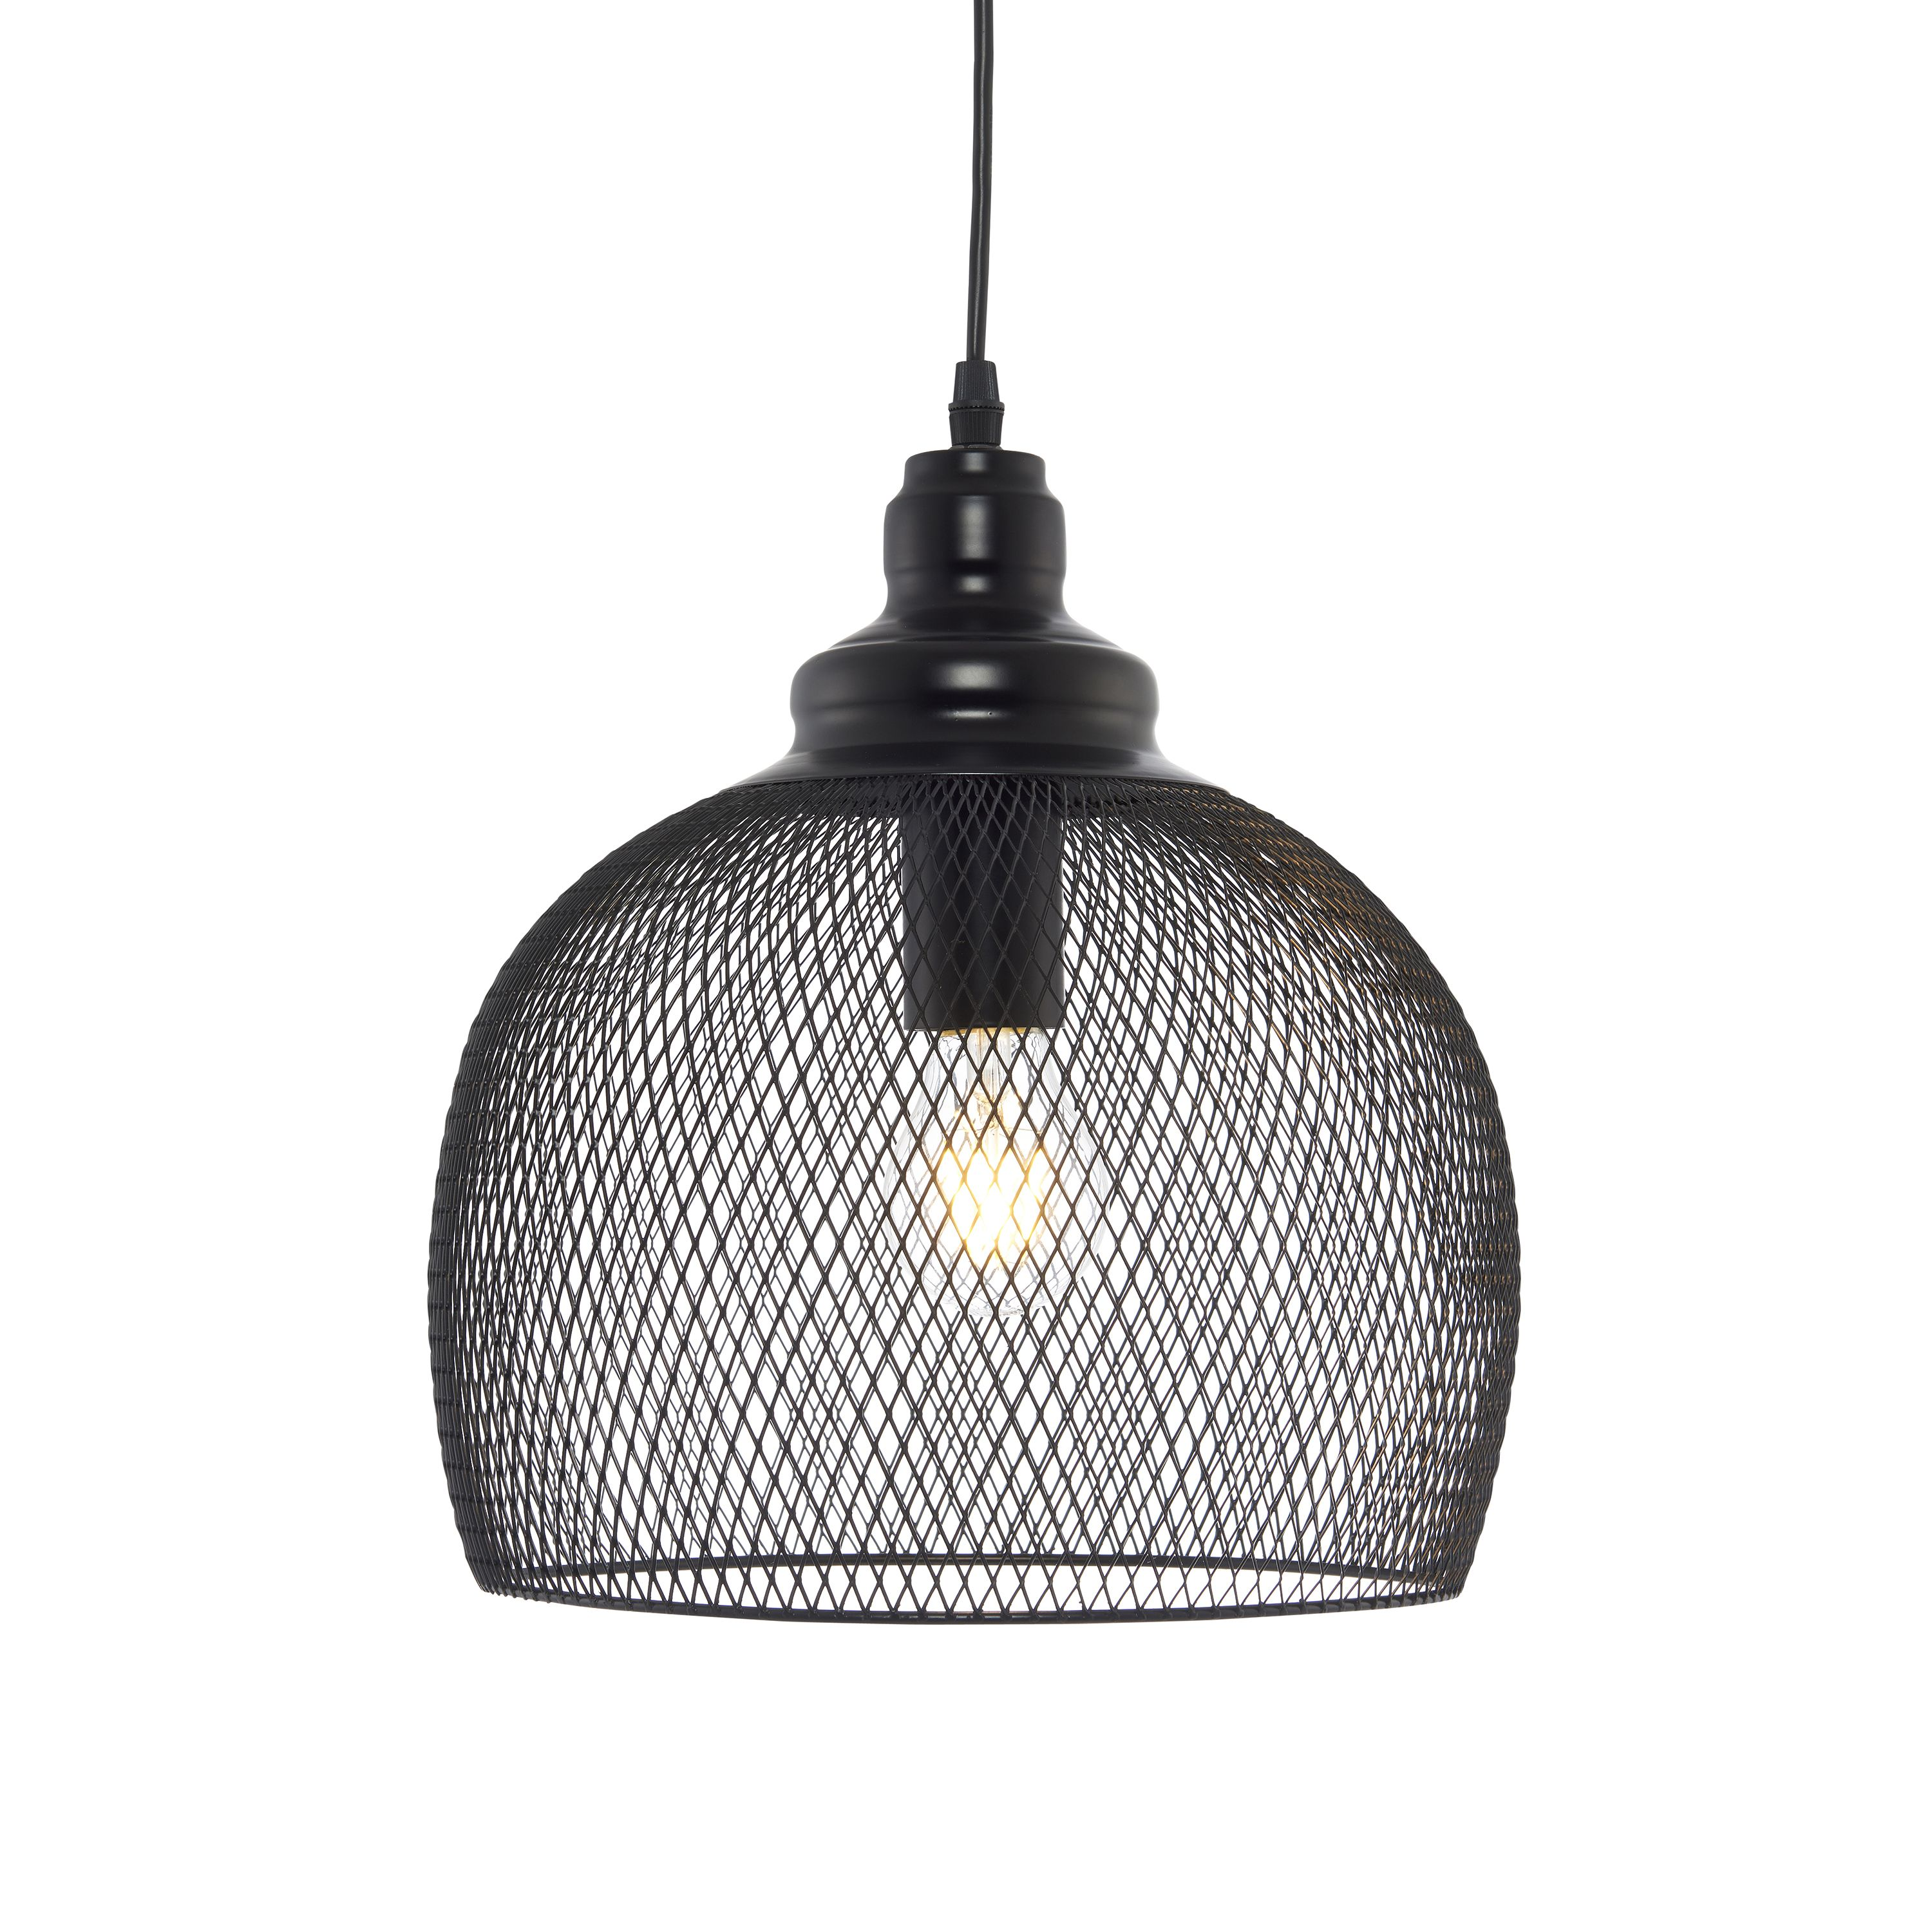 nym light lights lamp ceiling art ne ikea en black ceilings pendant products lighting gb